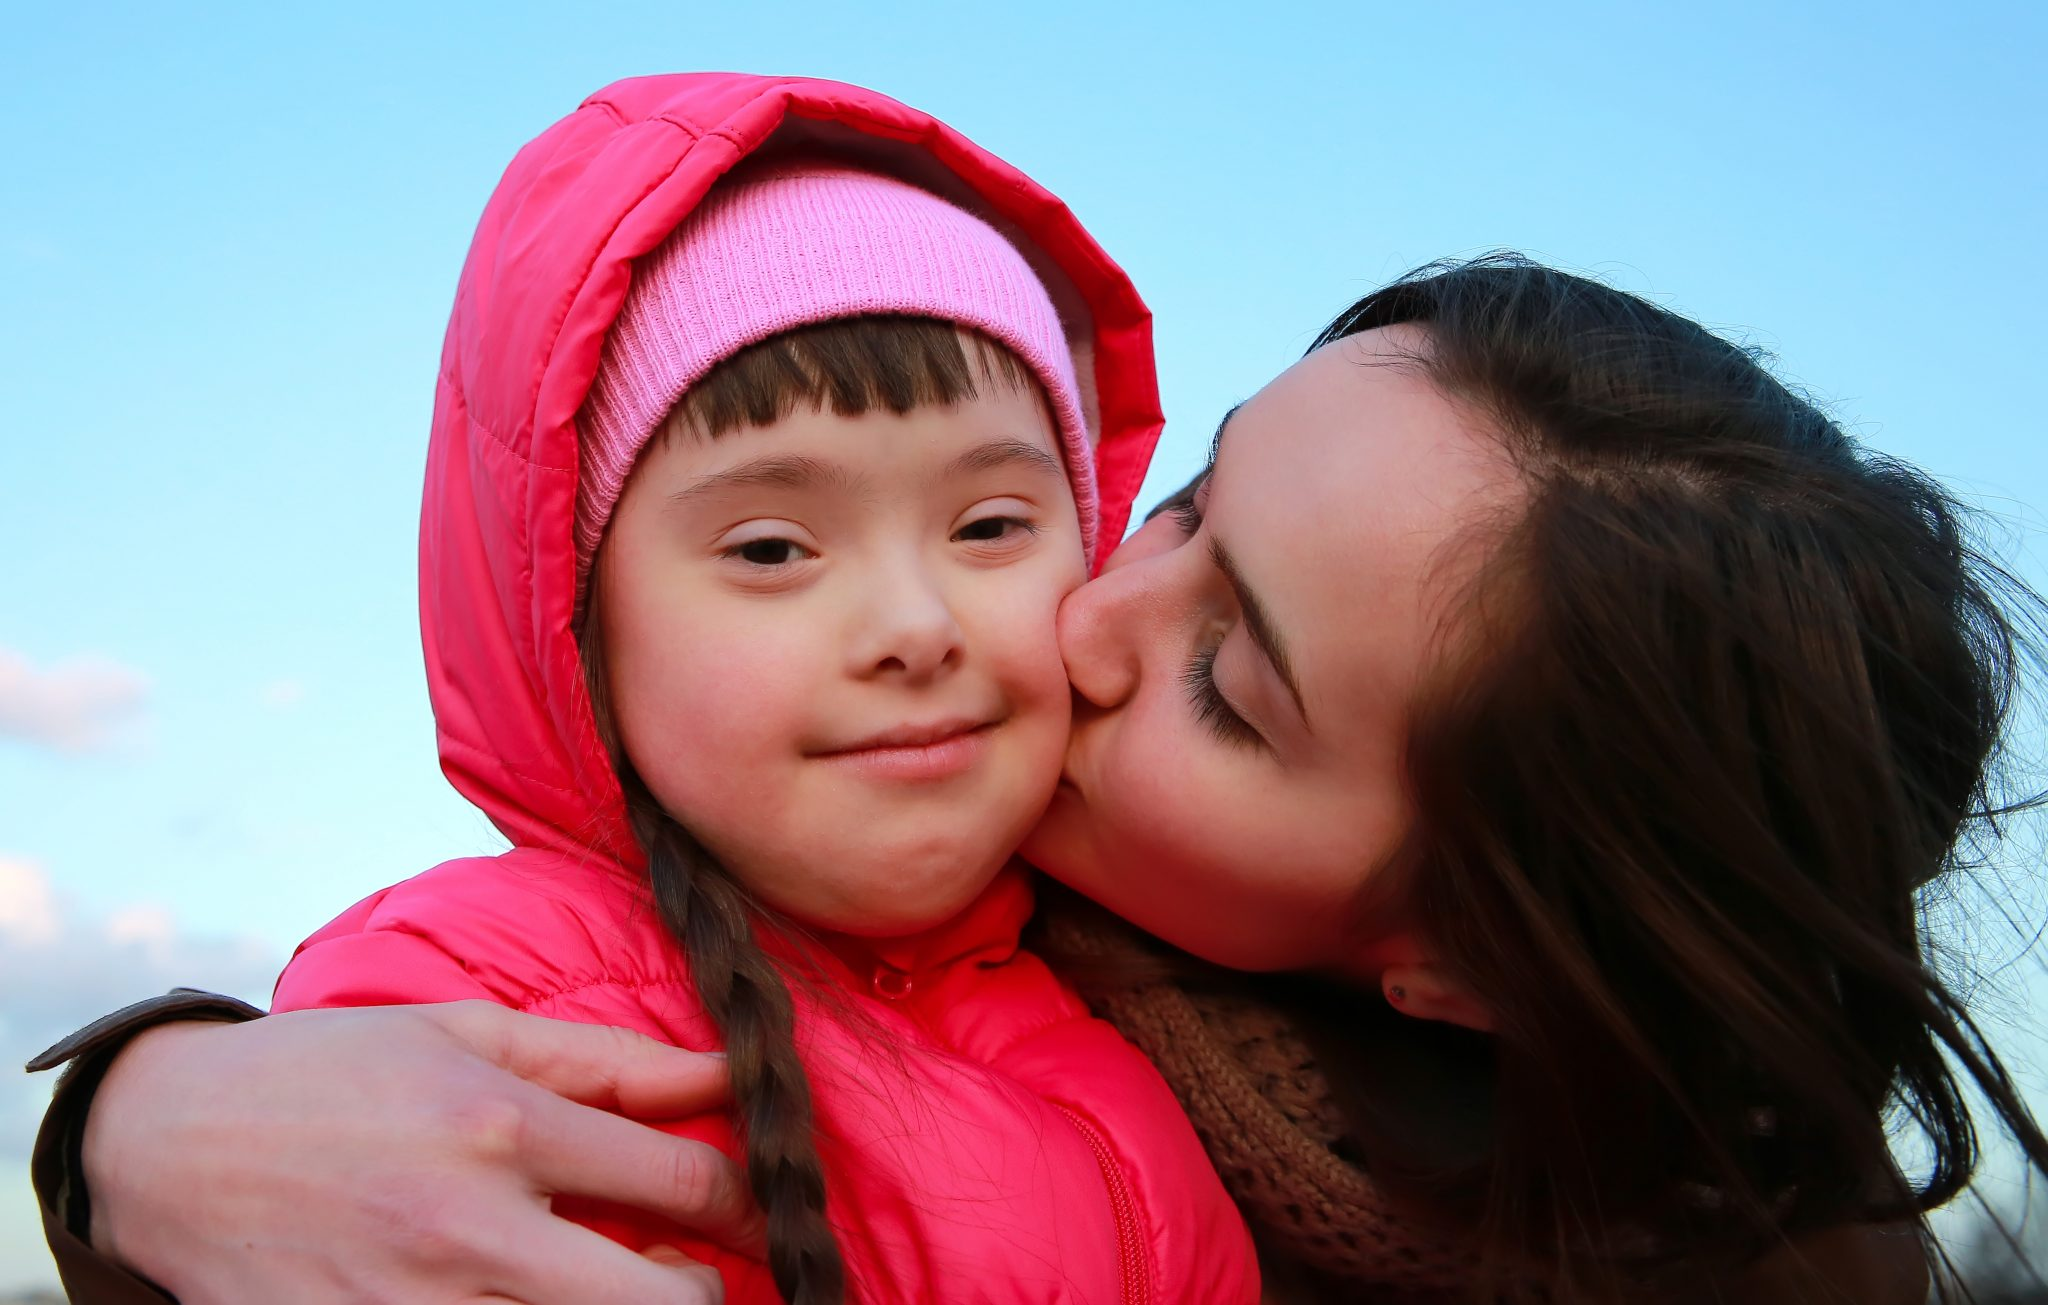 Adult woman embracing and kissing a young child on the cheek.